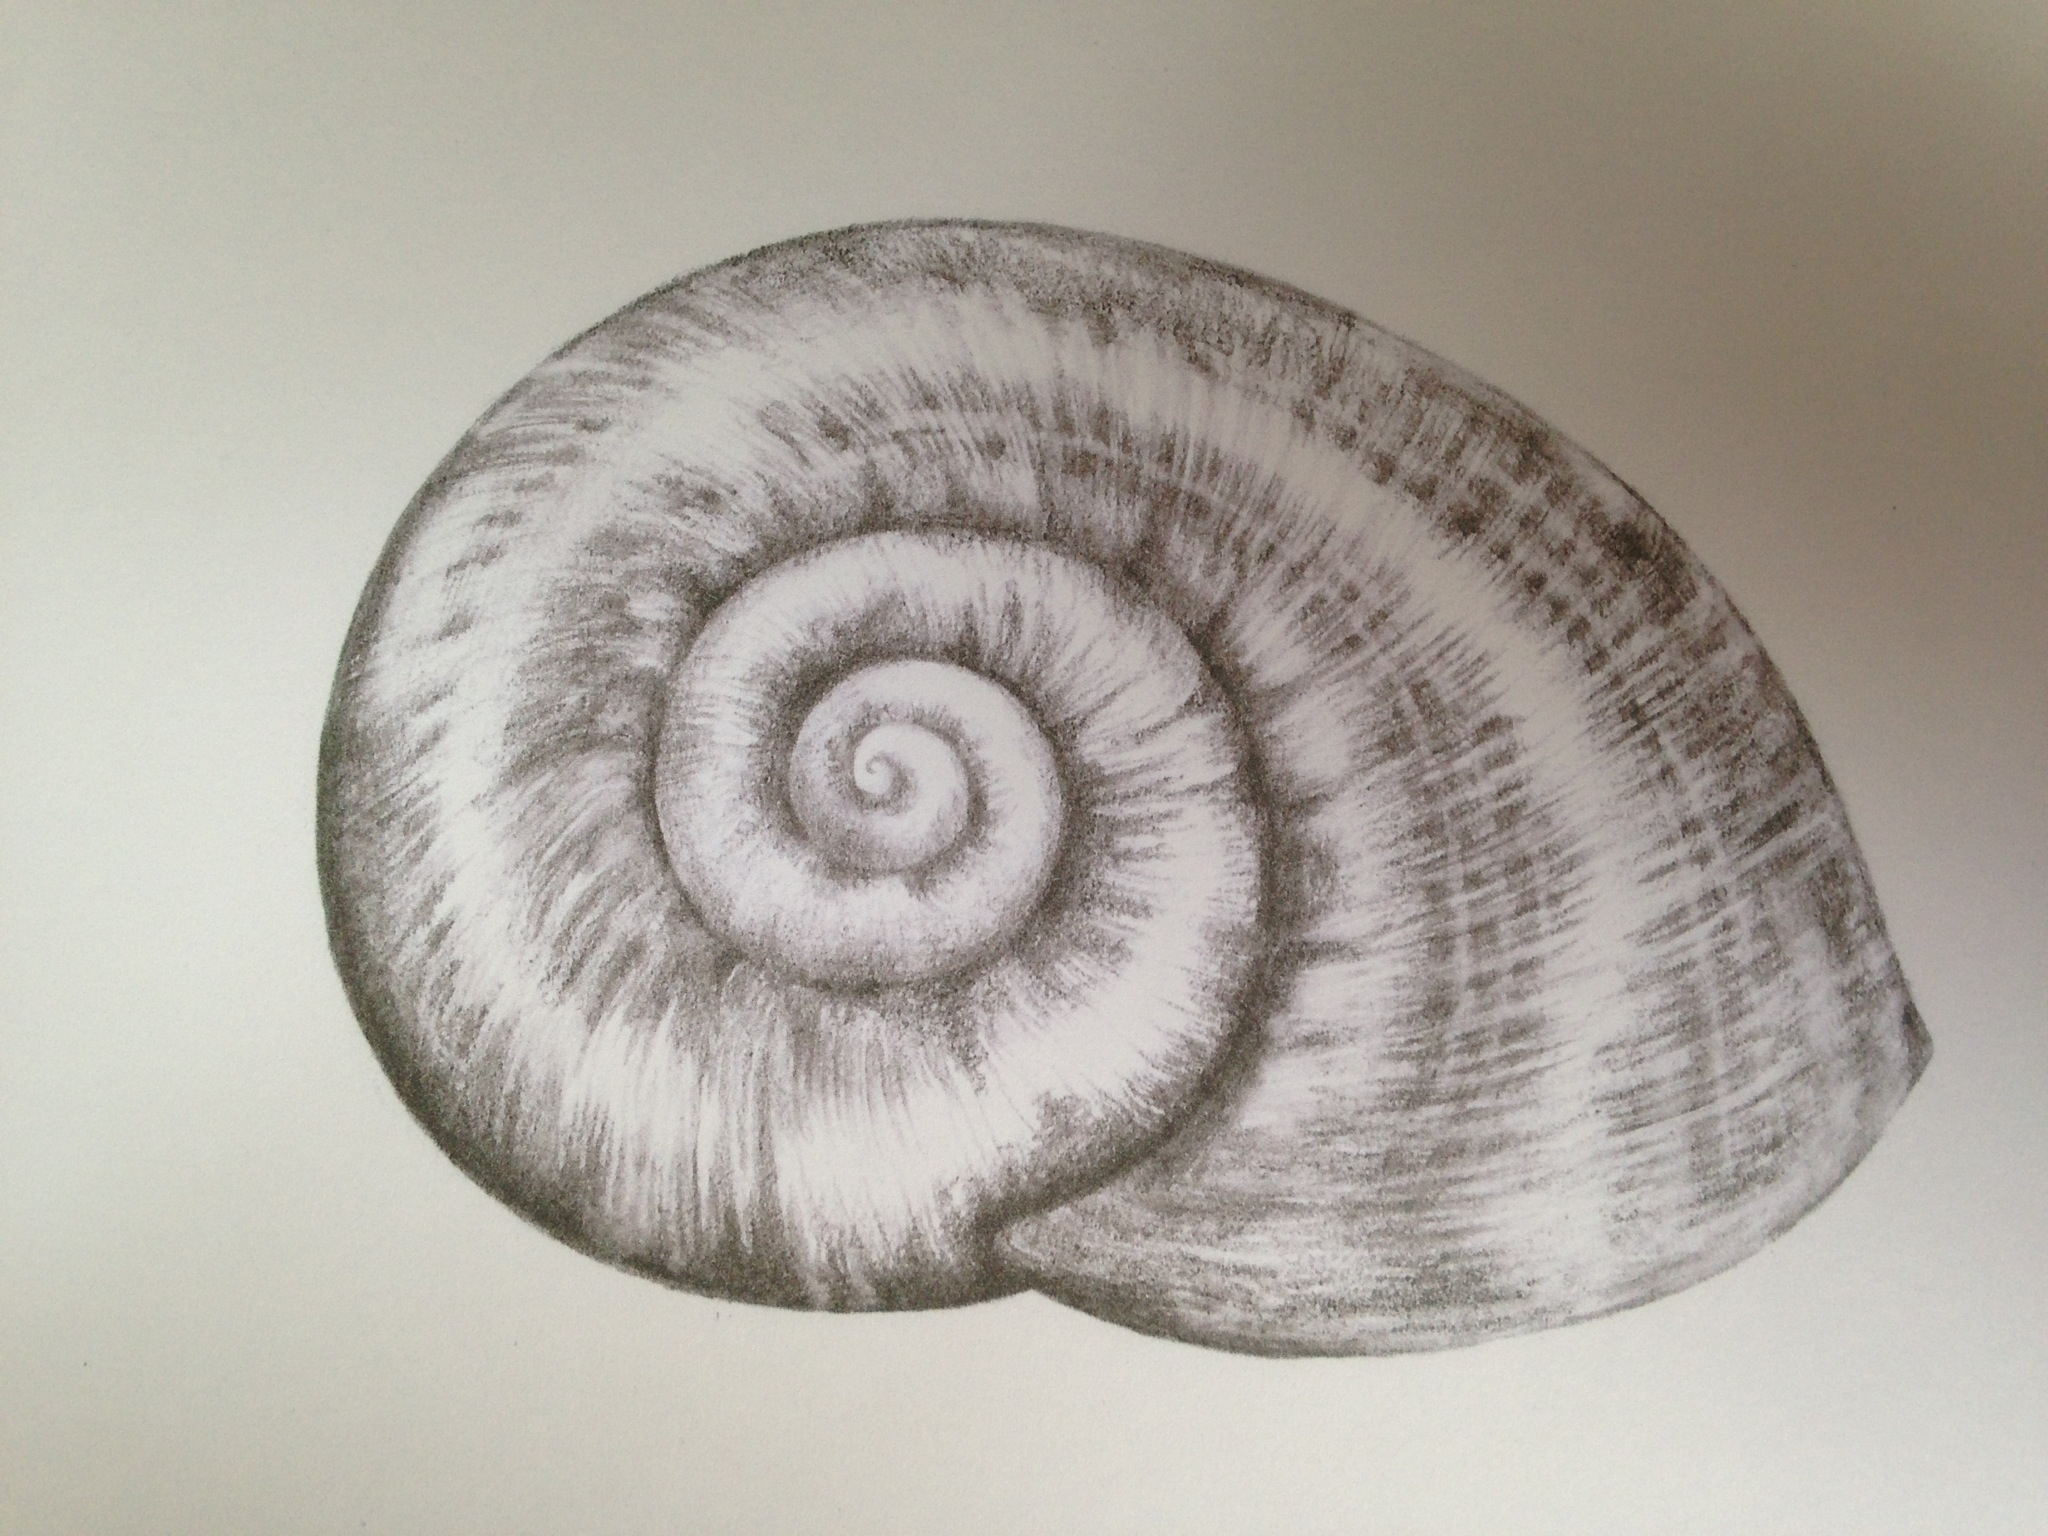 2048x1536 Shell Pencil Drawing Drawn Shell Snail Shell